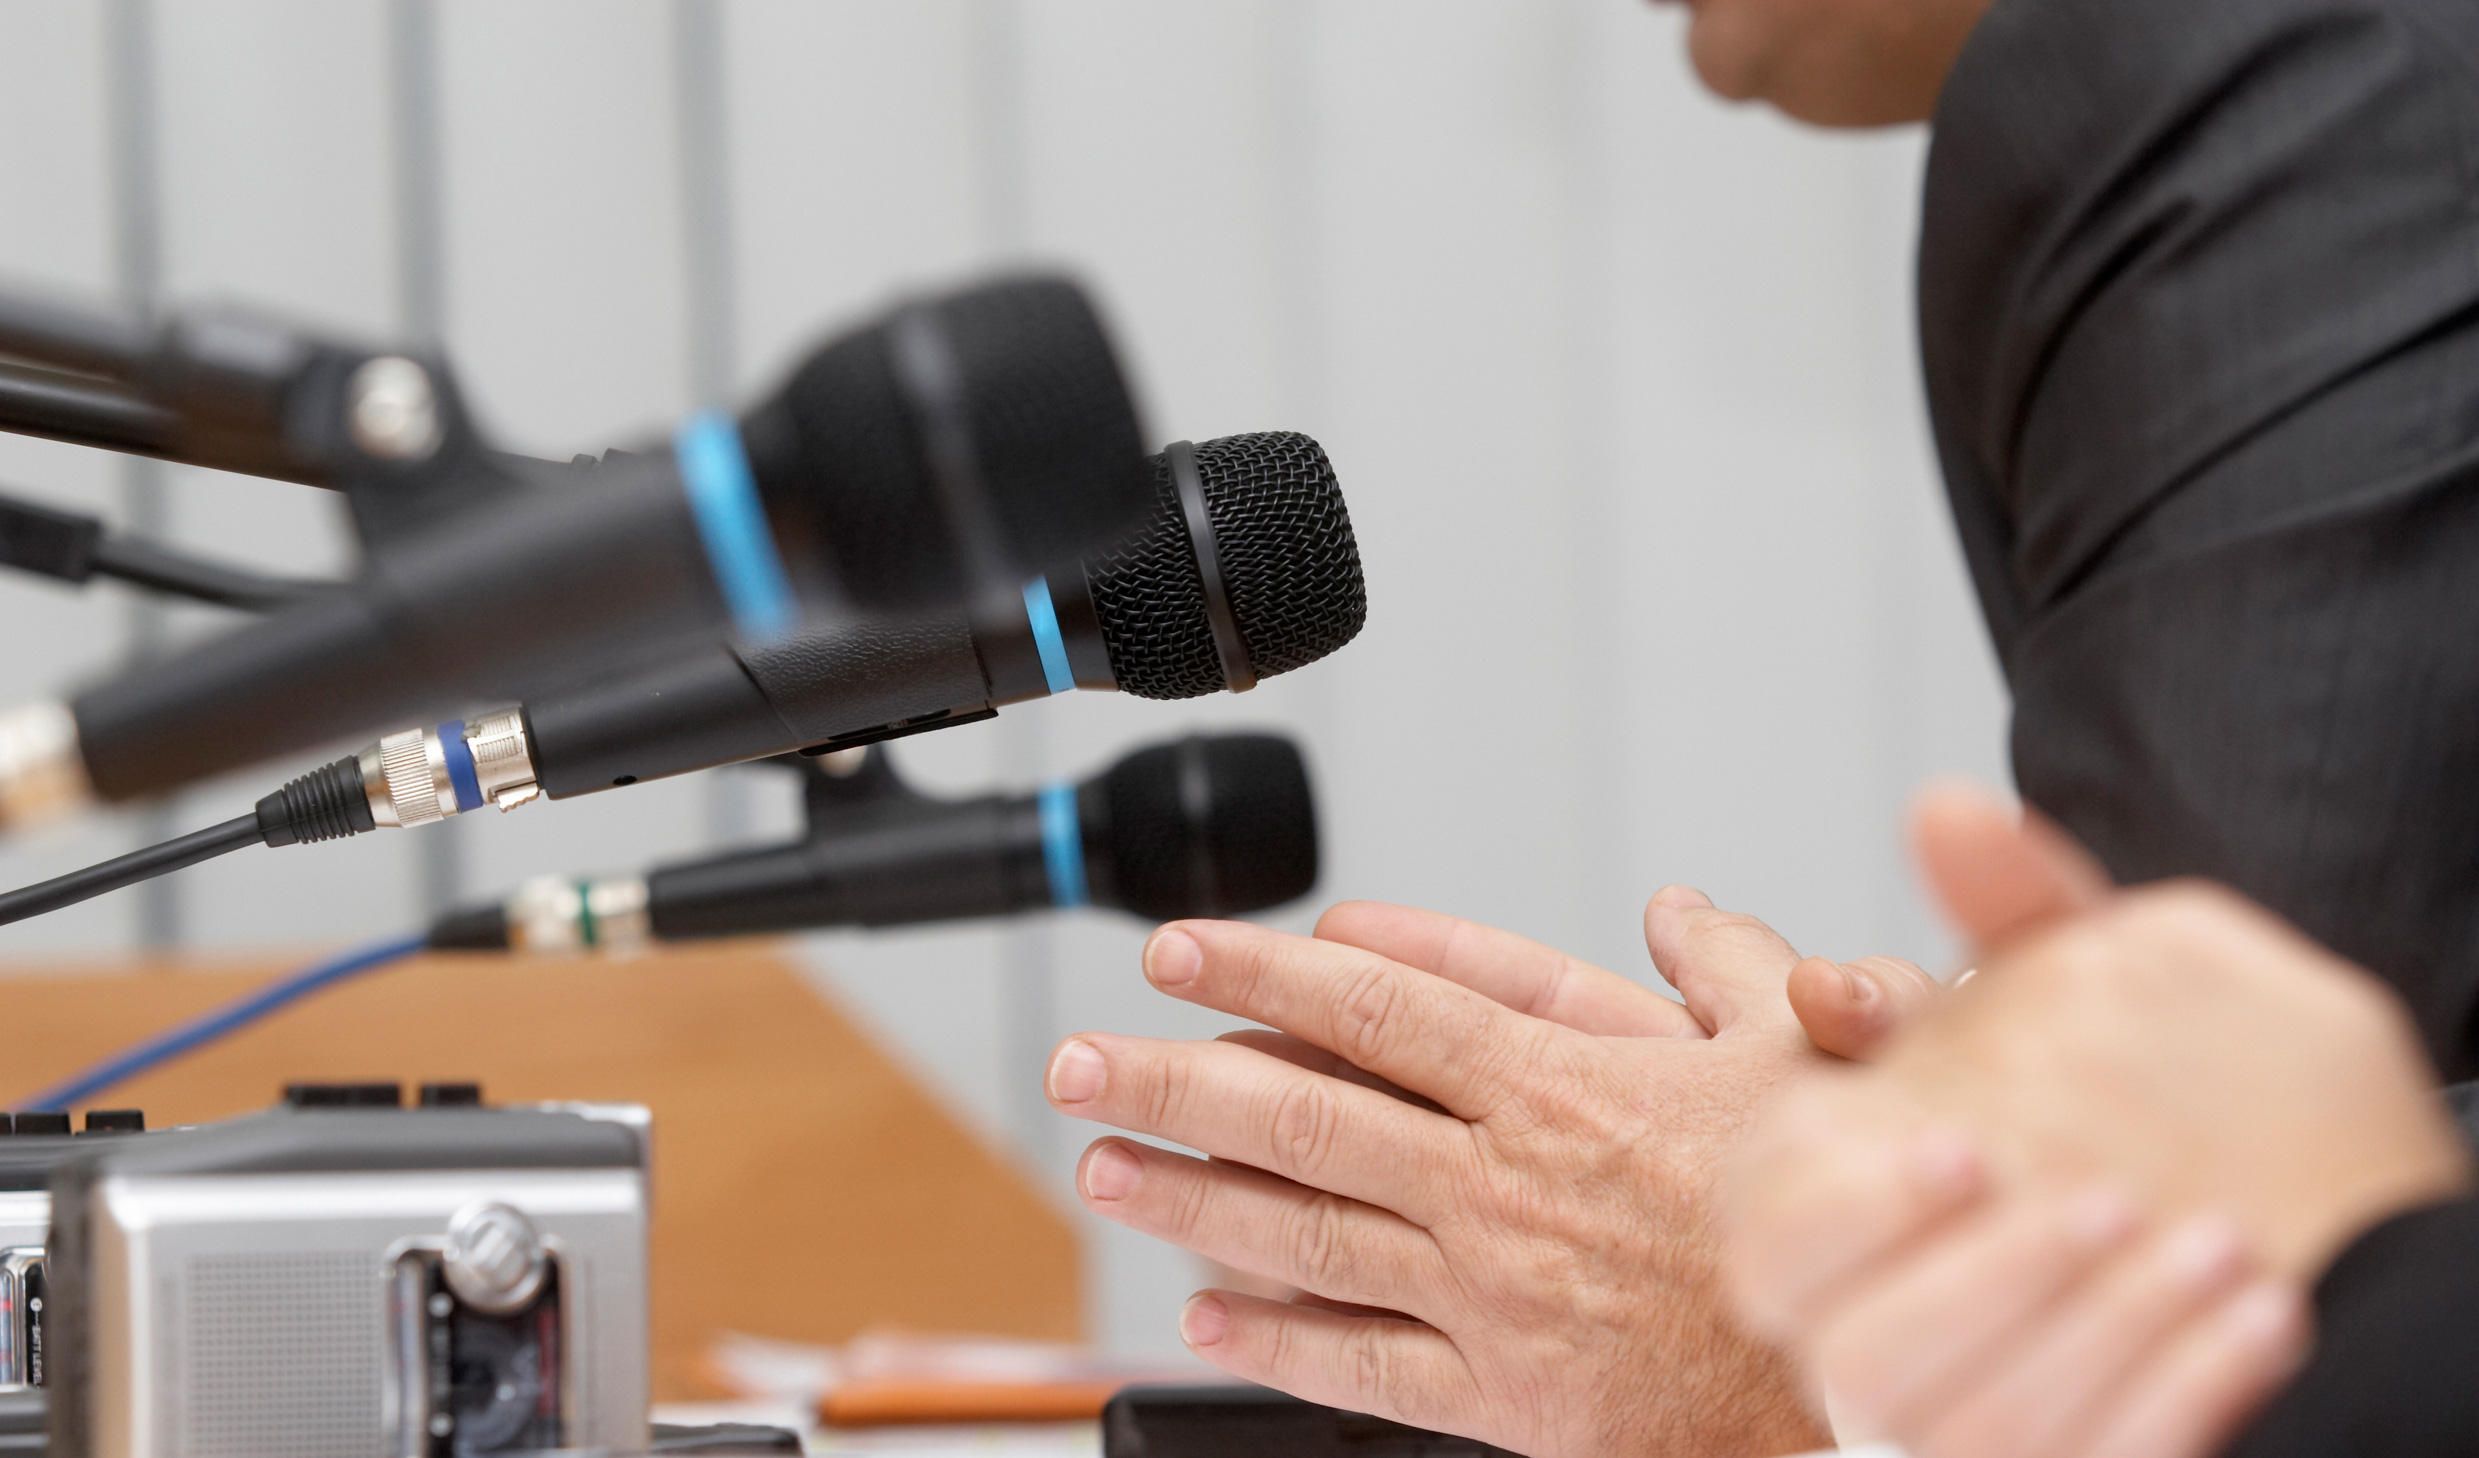 Microphones in a conference room